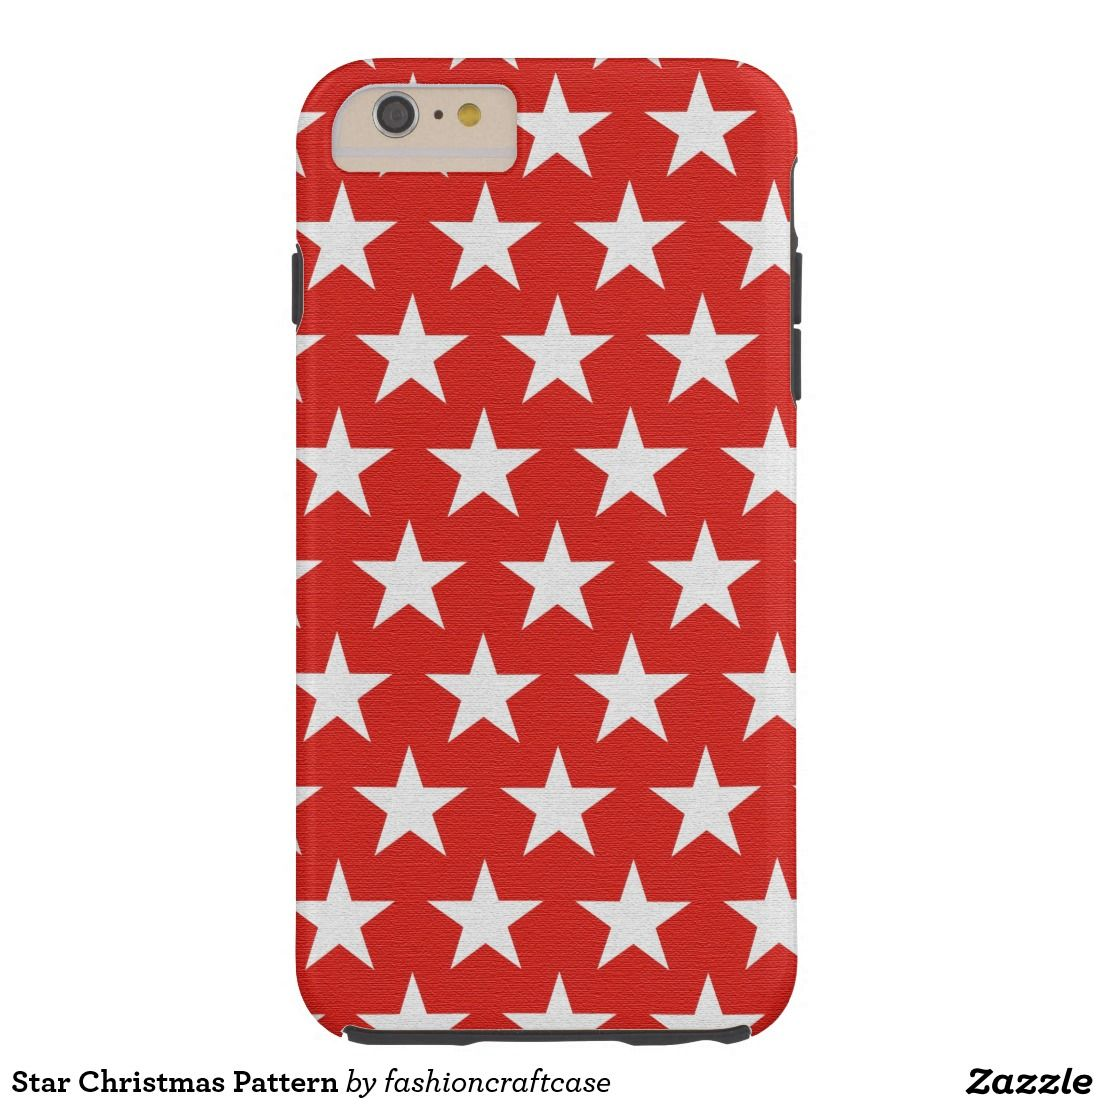 Star Christmas Pattern Tough iPhone  Plus Case  CELL PHONE CASES